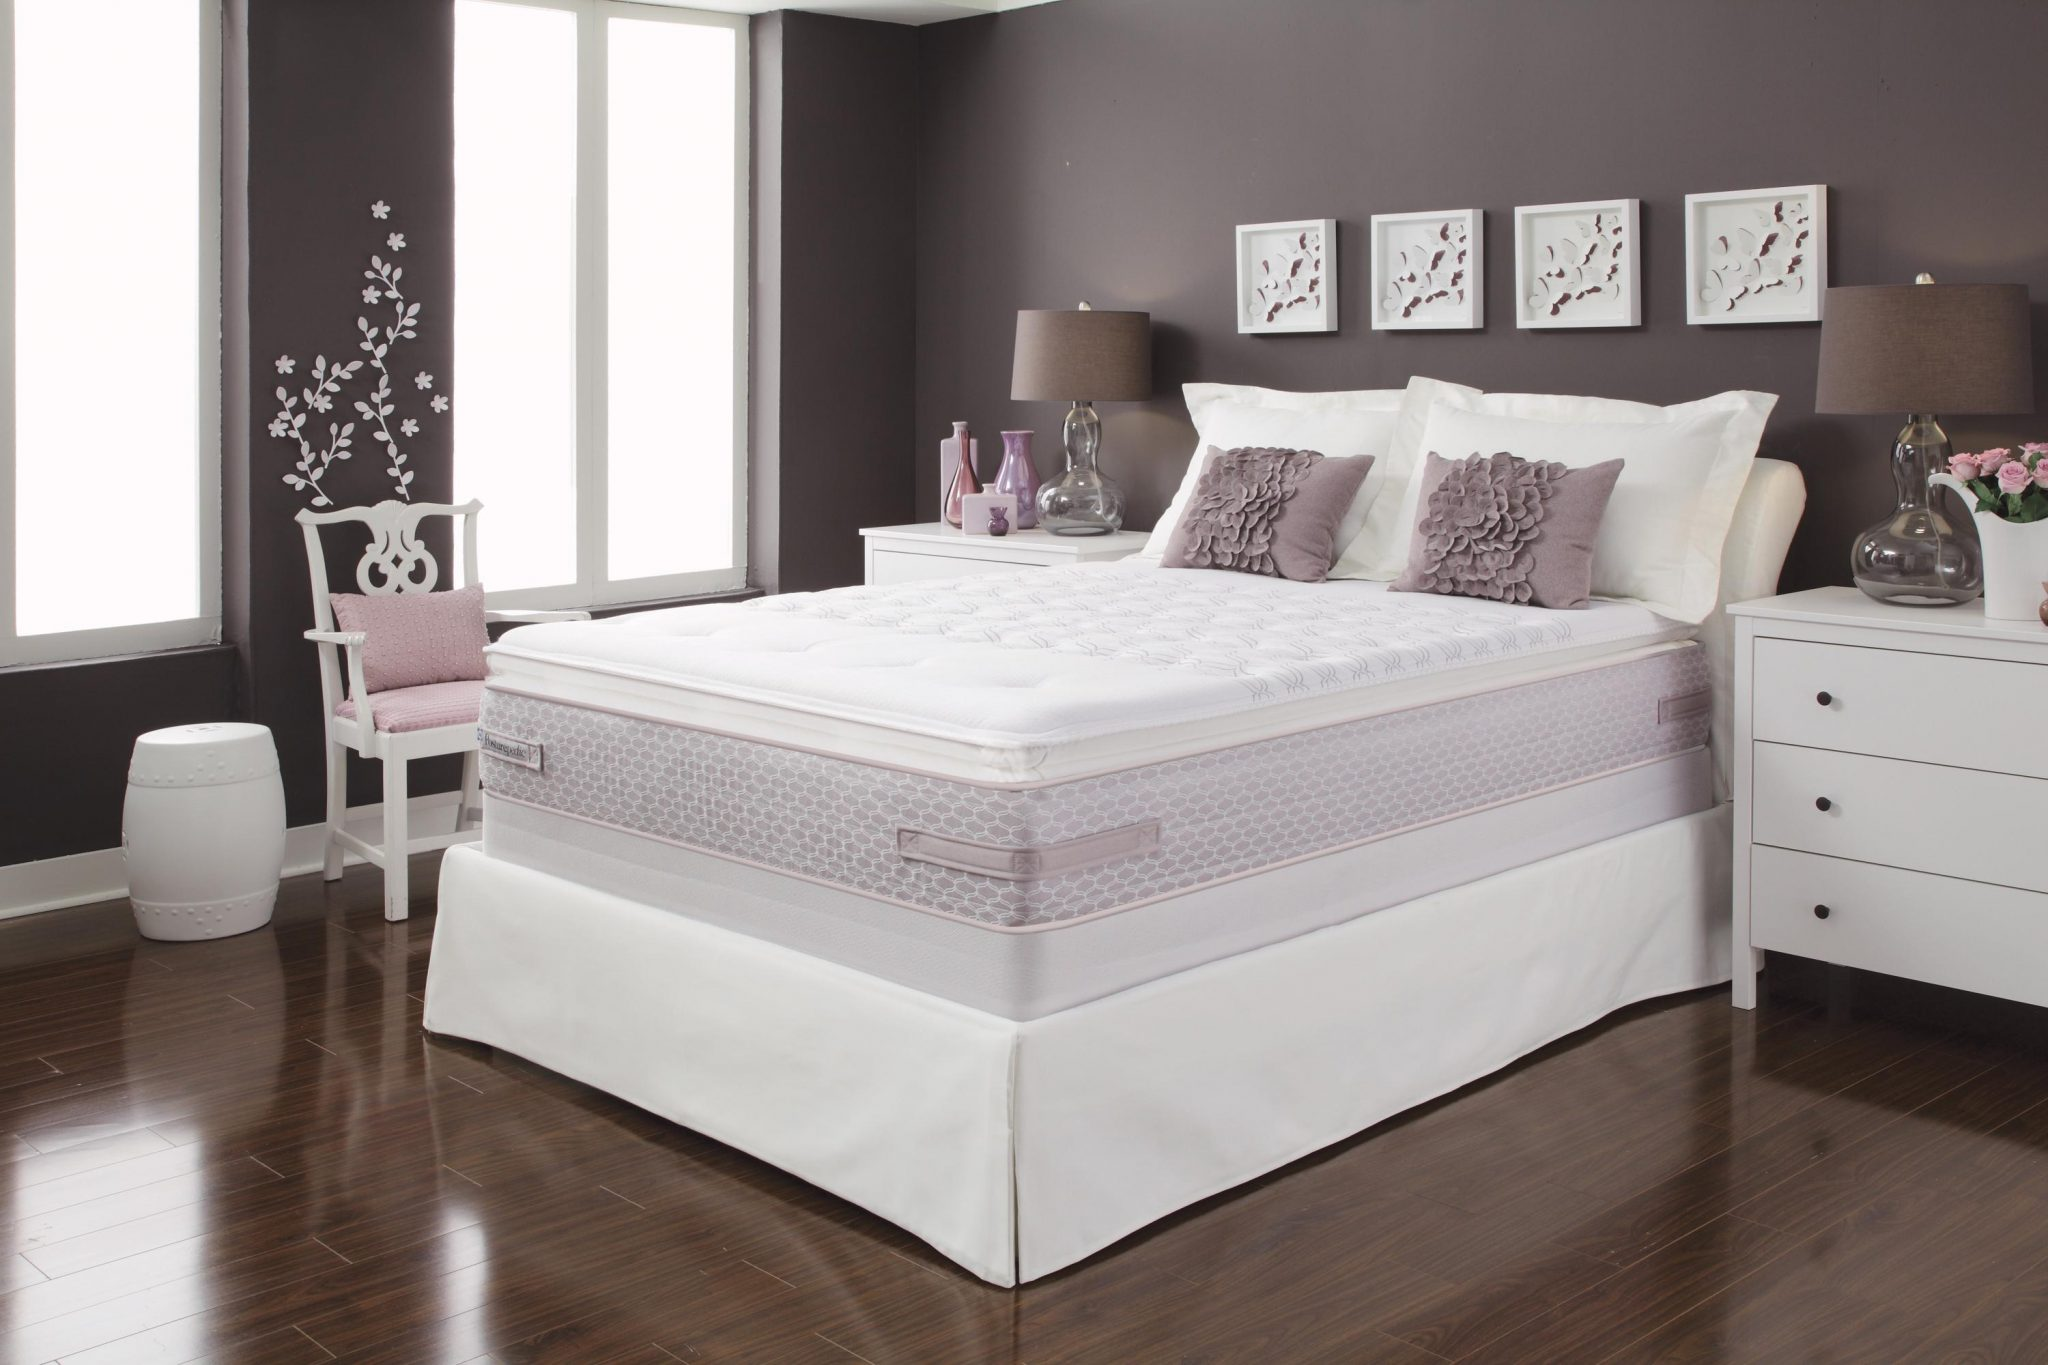 Stearns & Foster Latex Mattress At Miles While You Sleep